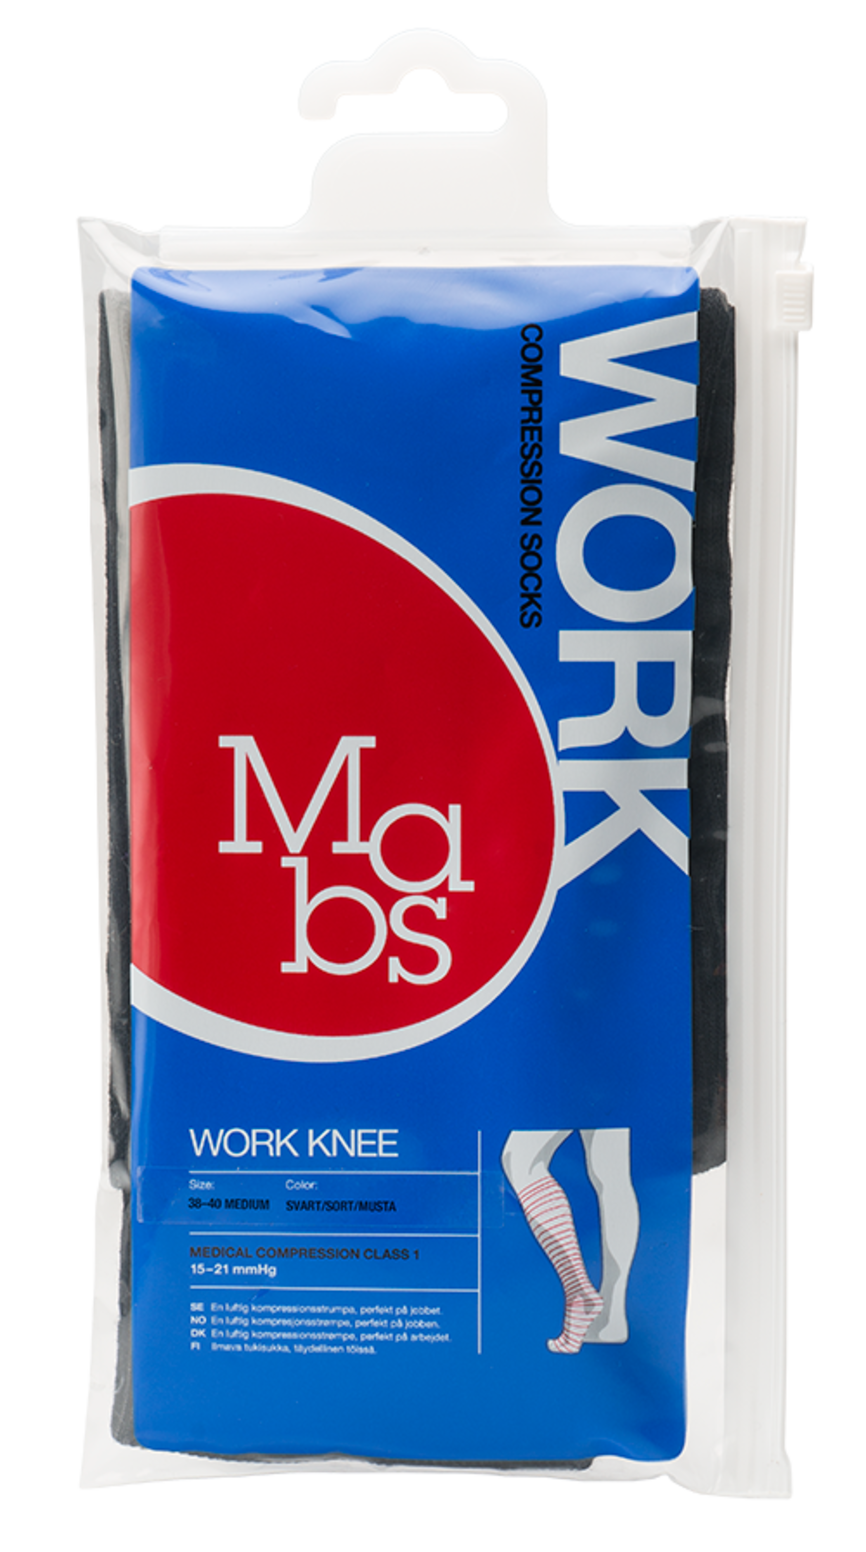 Mabs-forpakning-WorkKnee-Spng-pearl866x